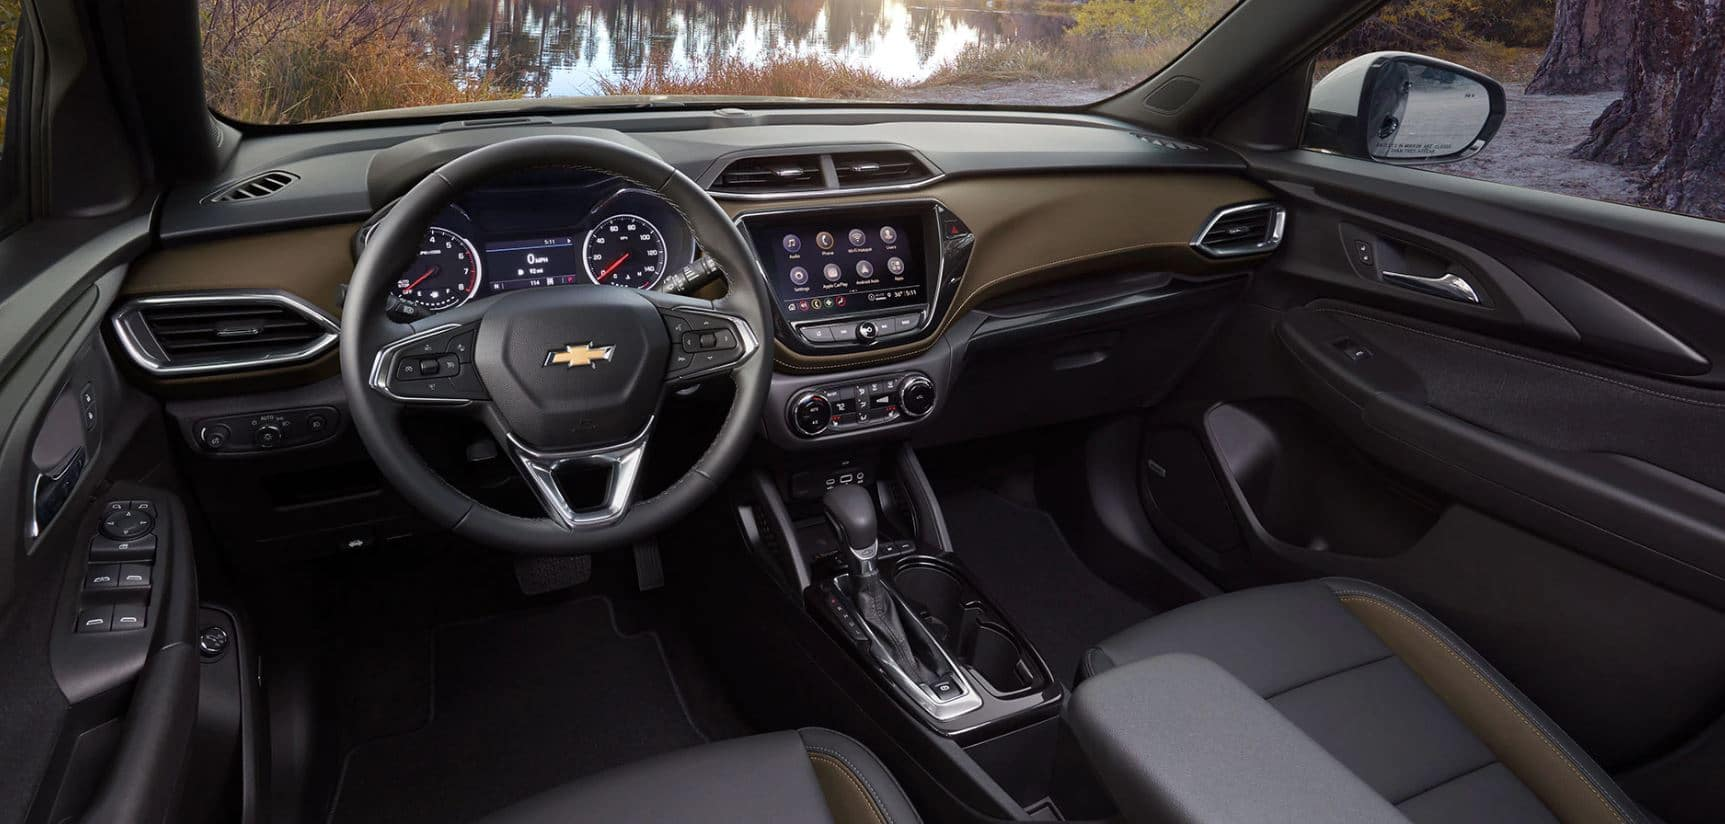 Interior of a 2021 Chevy Trailblazer. The 2021 Chevy Trailblazer is available now at Mike Anderson Chevrolet of Chicago